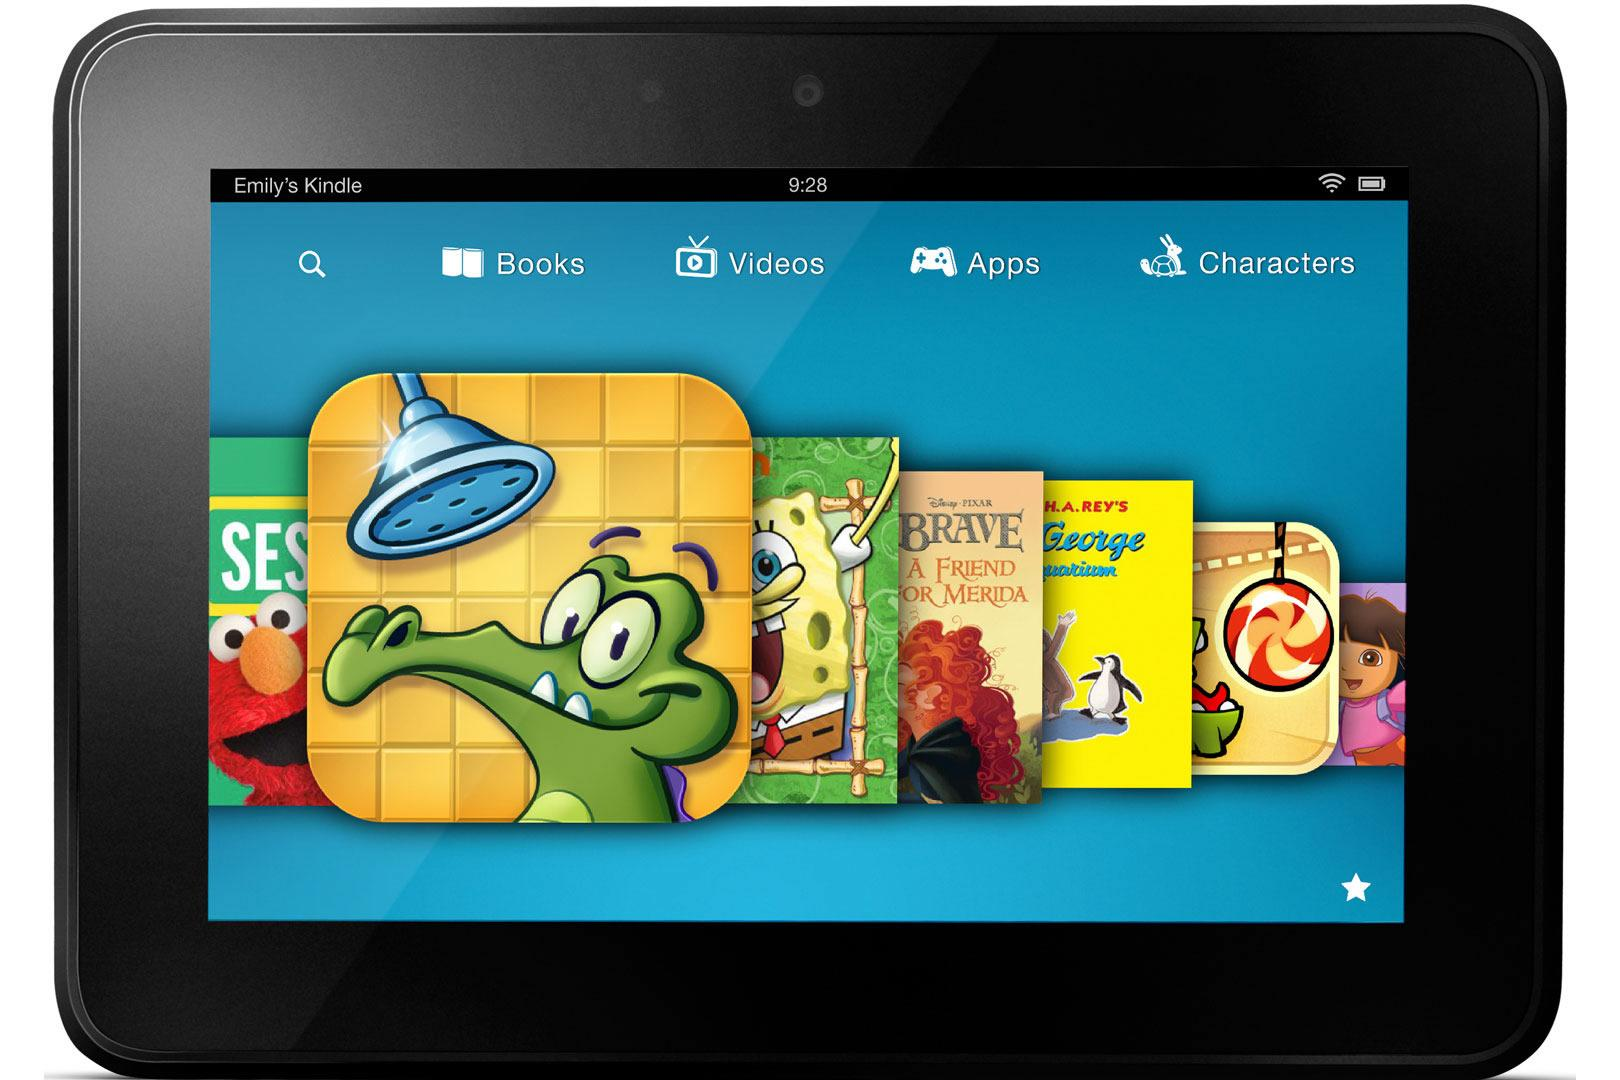 Amazon adds educational goals for kids on Kindle Fire tablets   Digital Trends